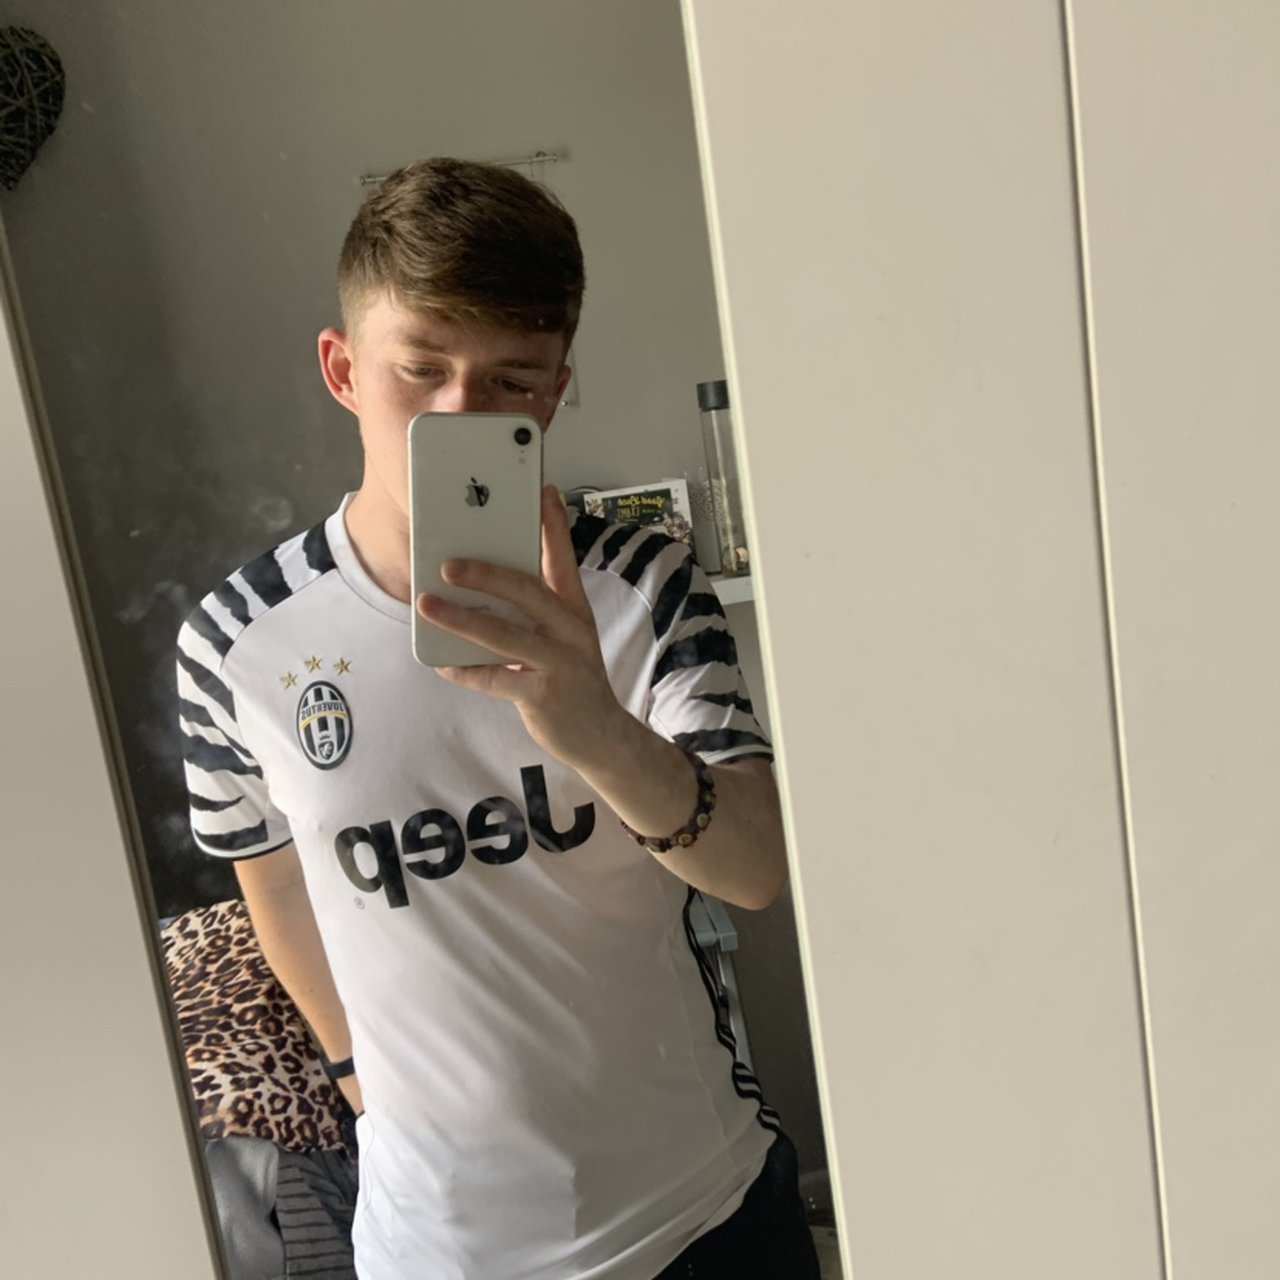 Juventus Football Club Iconic Zebra Kit From The Depop